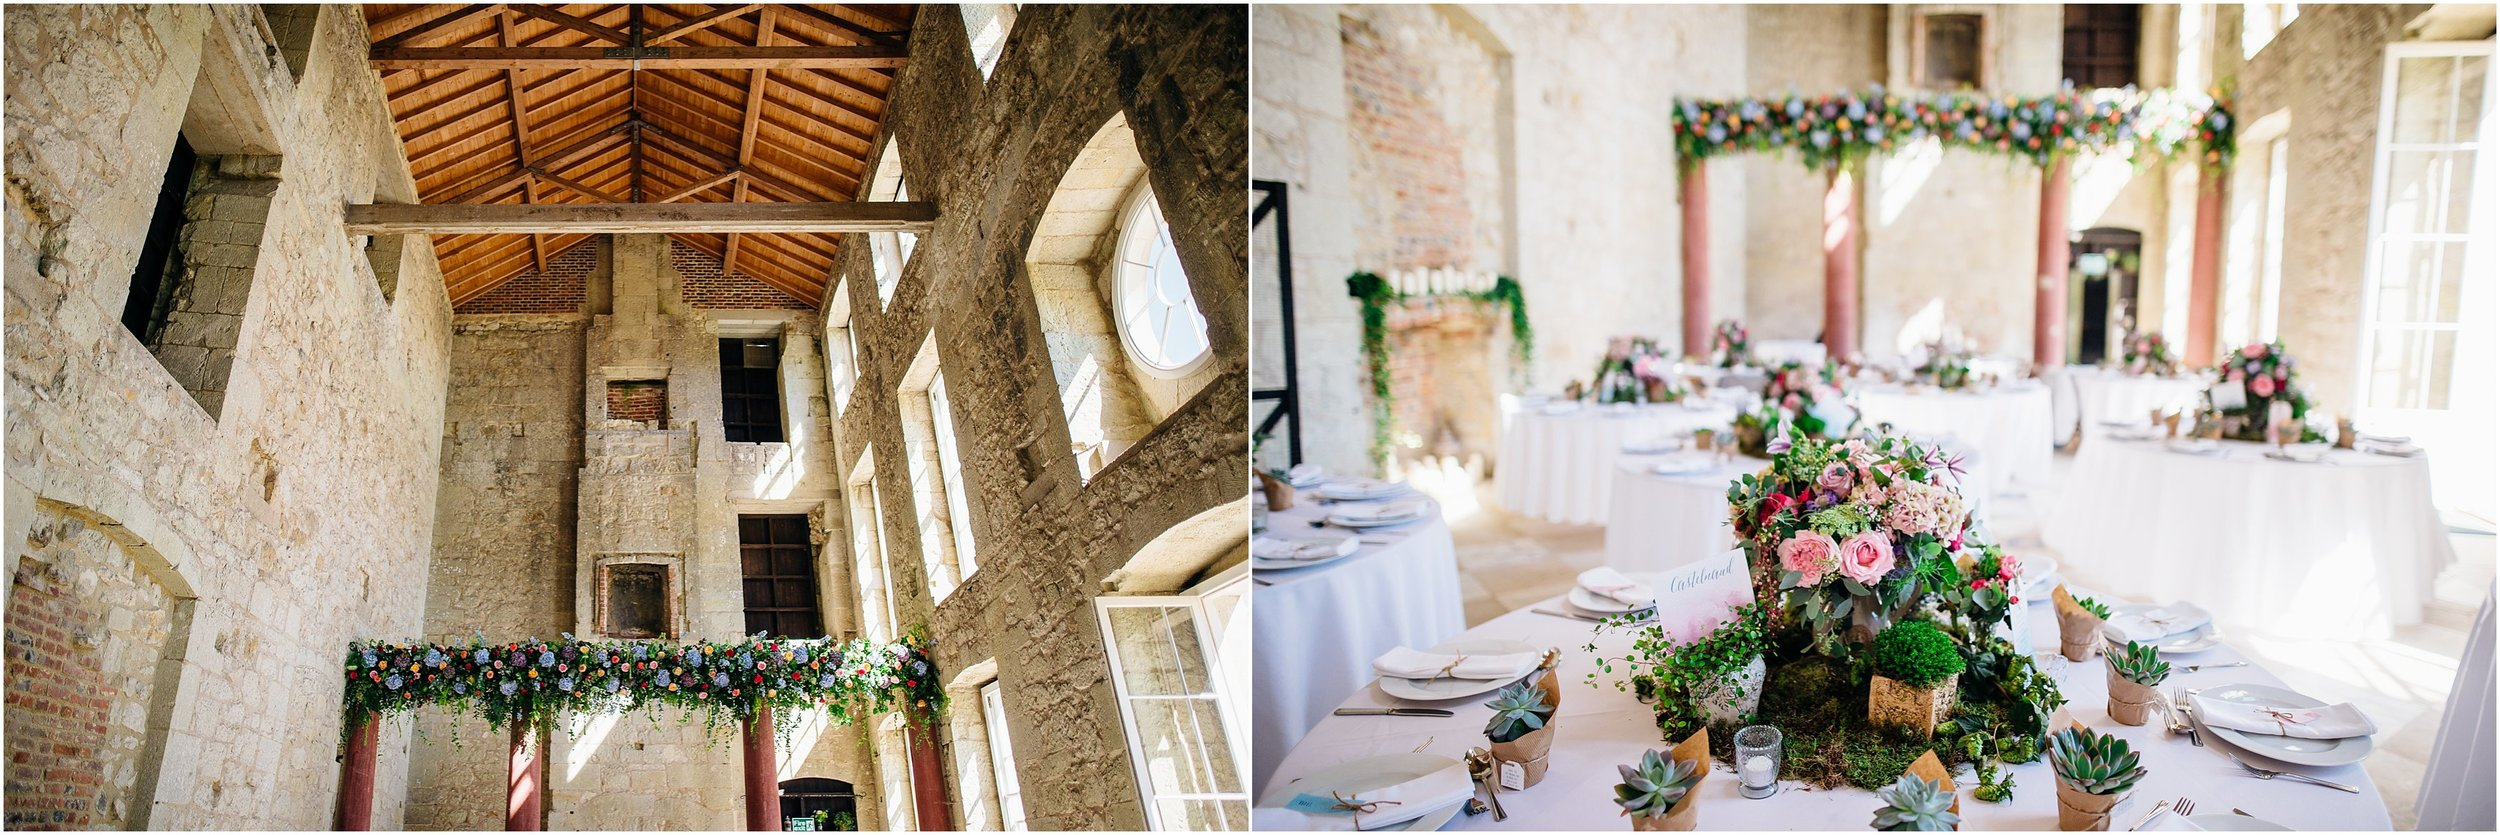 ENGLISH COUNTRY HOUSE WEDDING-RUSTIC FLORAL CHIC_0016.jpg